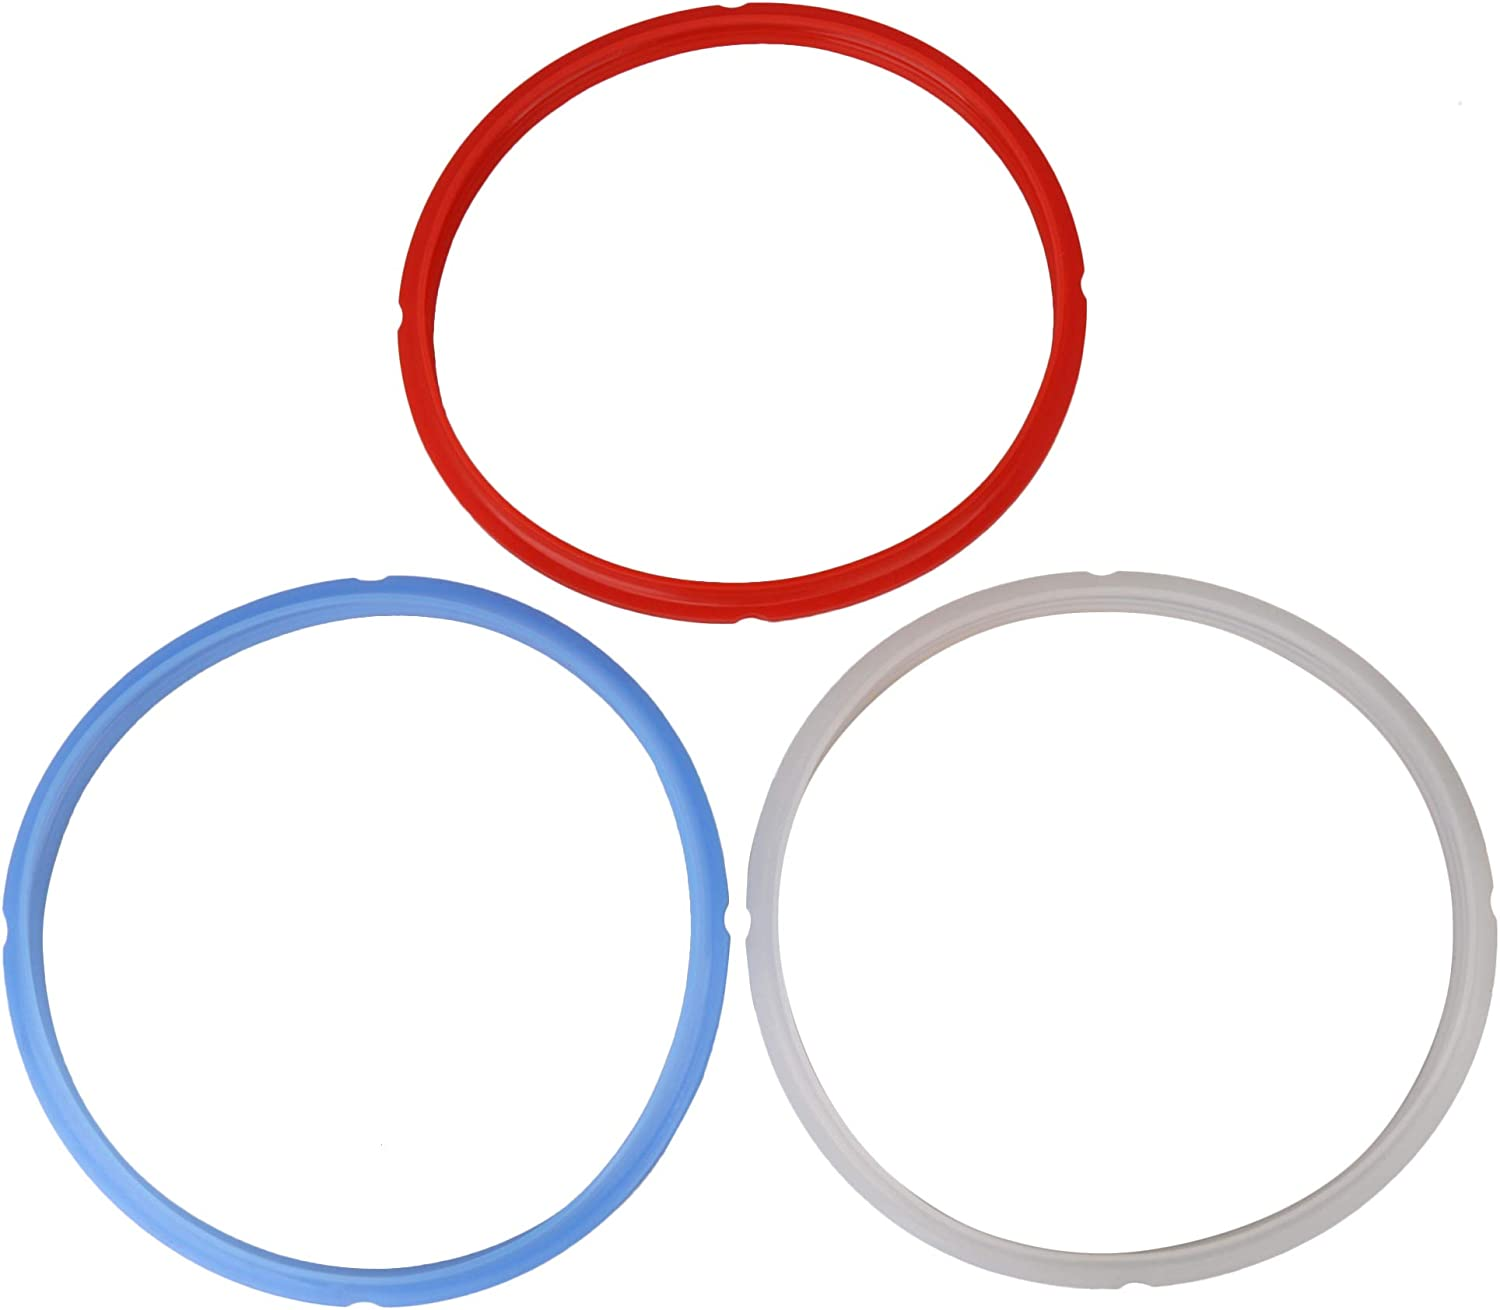 Mxfans 3 x Silicone Seal Ring Gaskets Replacement for Pressure Cooker 8Qt